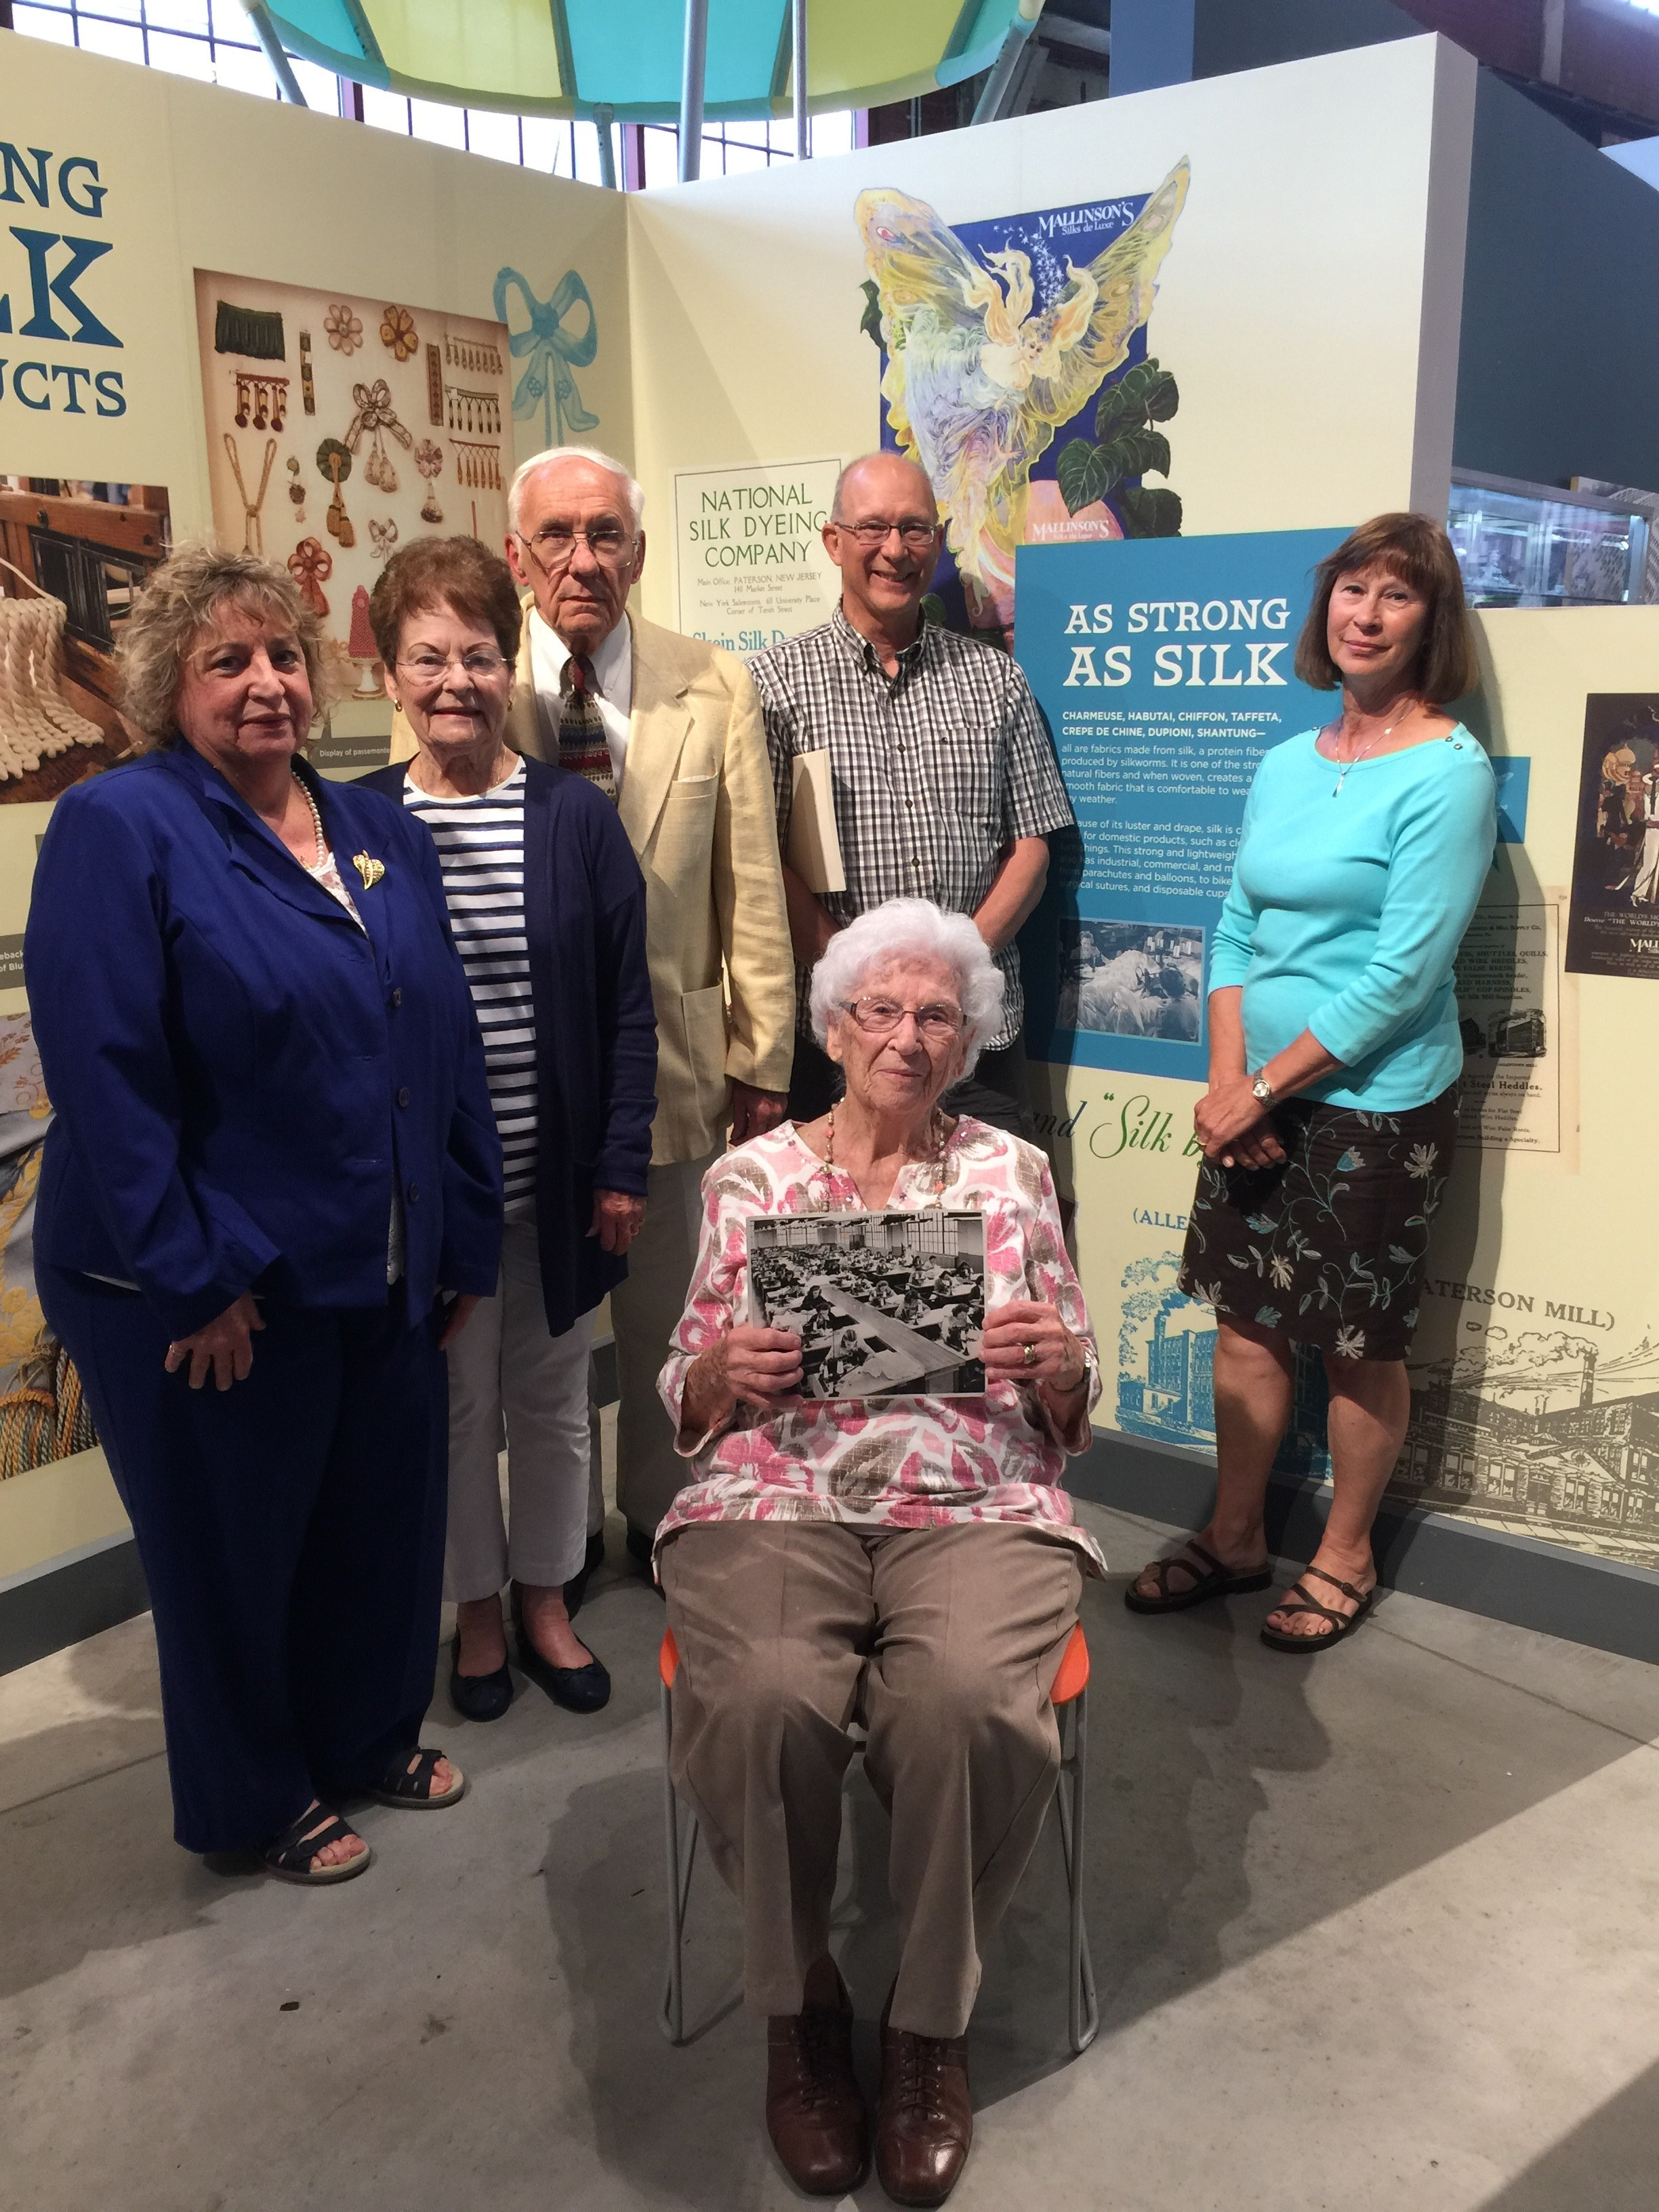 L-R Margorie Mainhart, Mrs. David Jones, David Jones, Norman King Jr., Judy King Molder with Marge Tarola (seated)